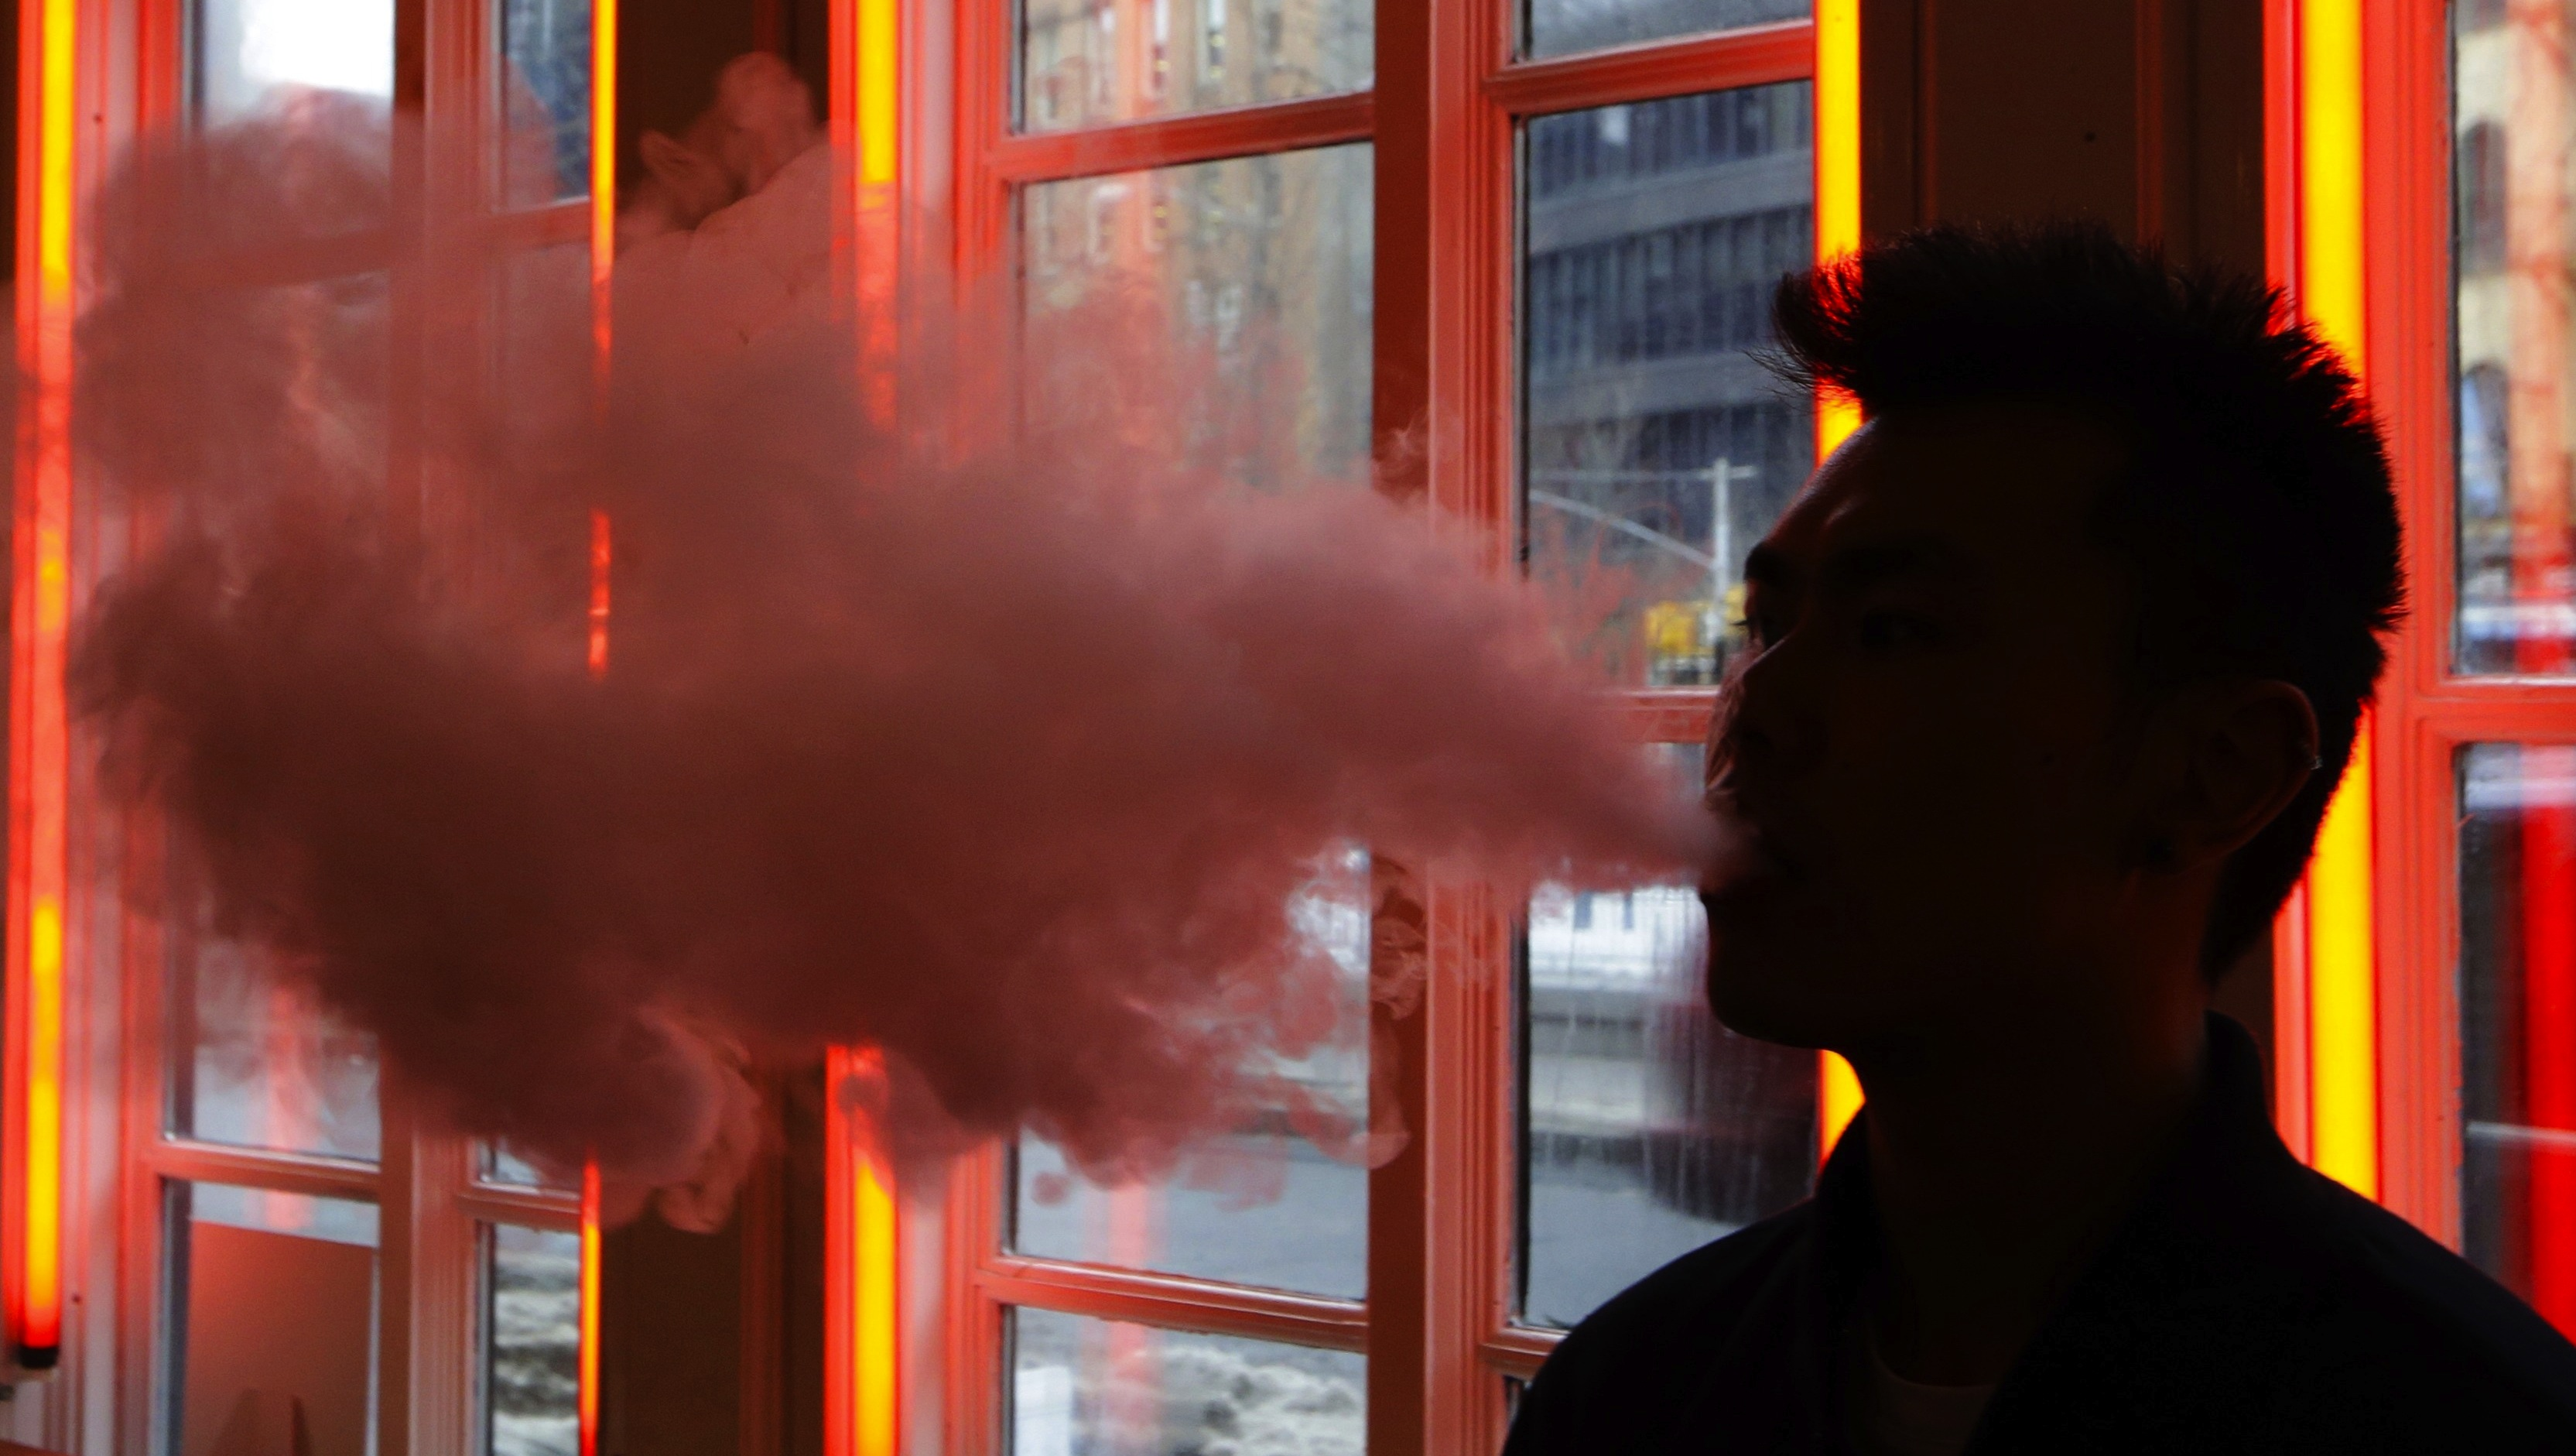 """In this Feb. 20, 2014 photo, a patron exhales vapor from an e-cigarette at the Henley Vaporium in New York. The proprietors are peddling e-cigarettes to """"vapers"""" in a growing movement that now includes celebrity fans and YouTube gurus, online forums and vapefests around the world. (AP Photo/Frank Franklin II)"""